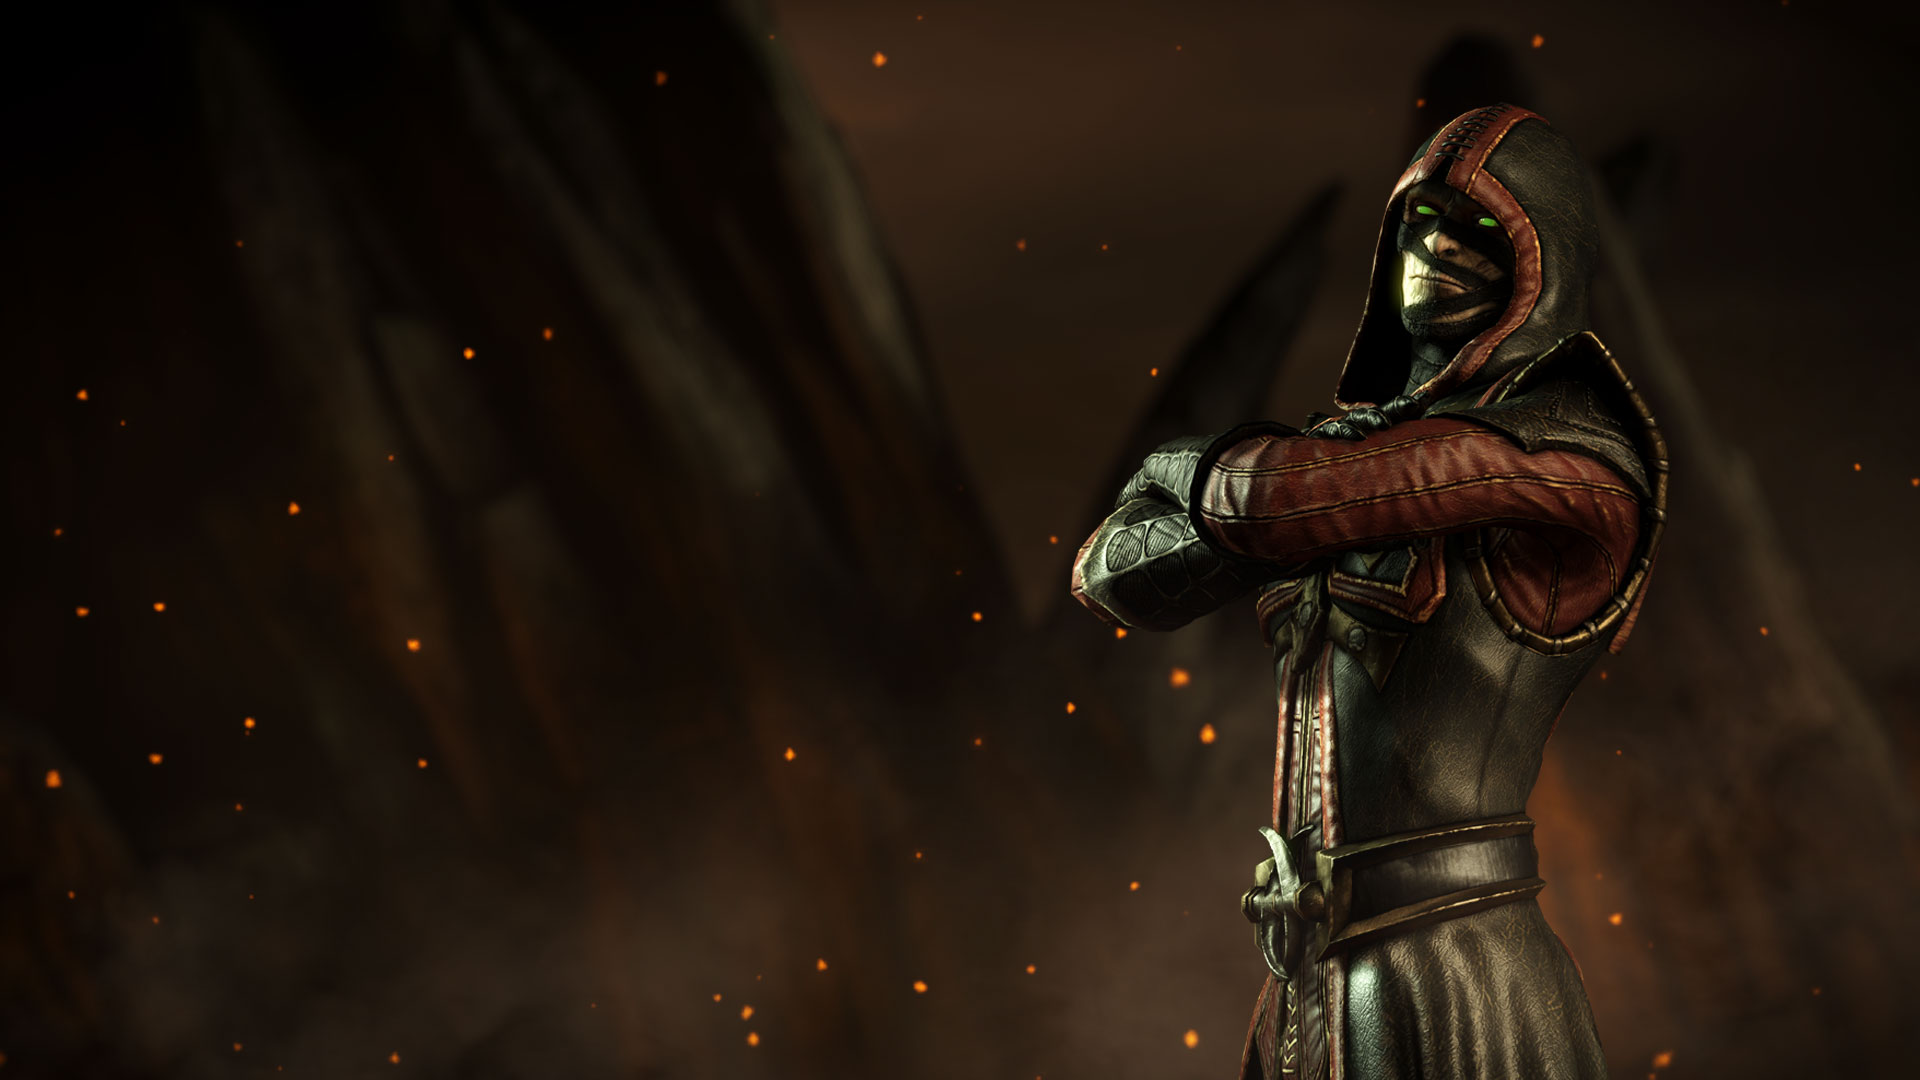 Best Hd Dark Wallpapers Mkwarehouse Mortal Kombat X Ermac